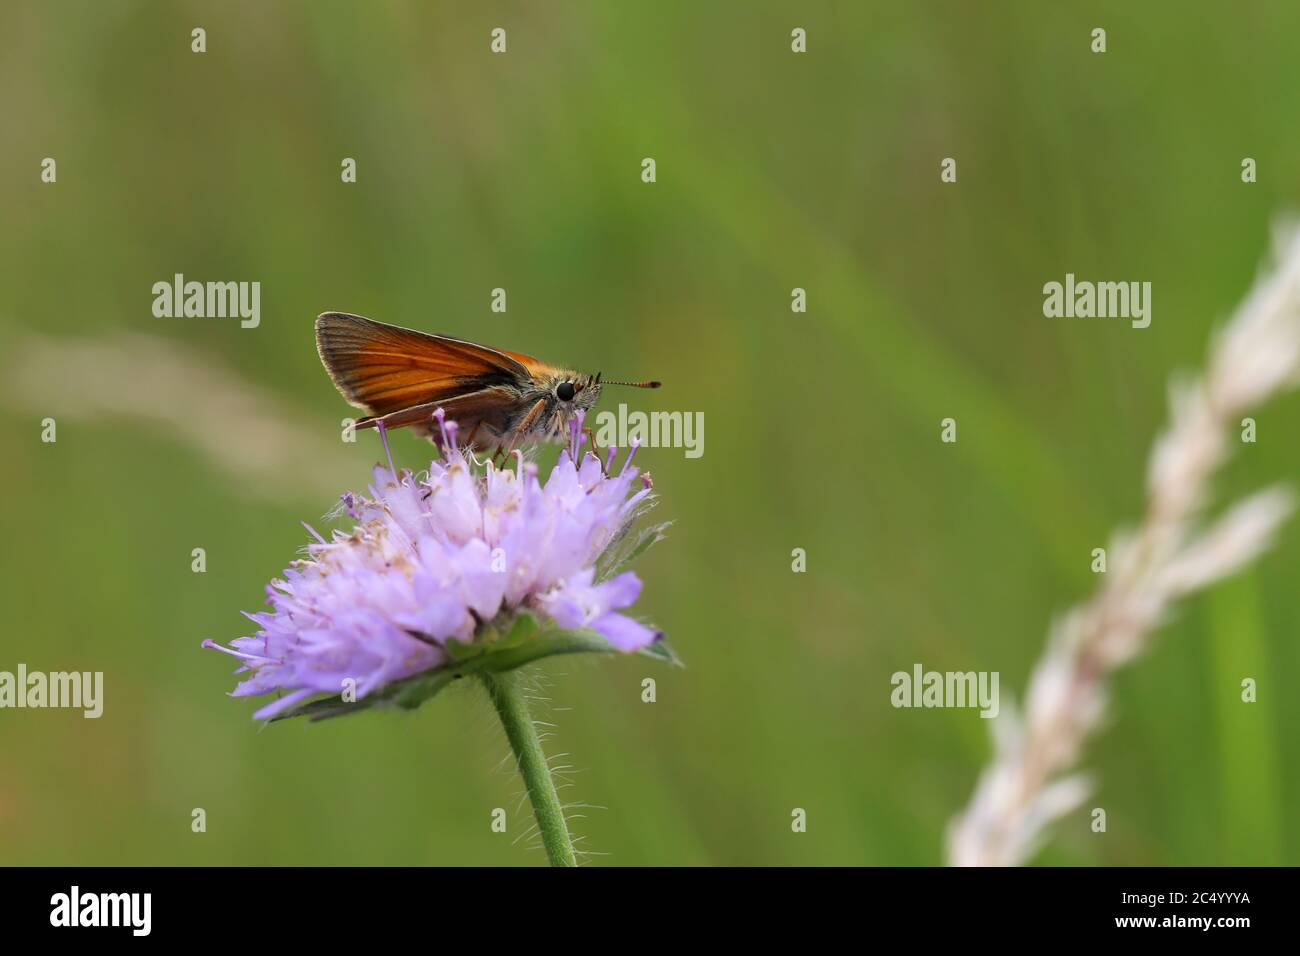 A close up view of a Large Skipper Butterfly Stock Photo